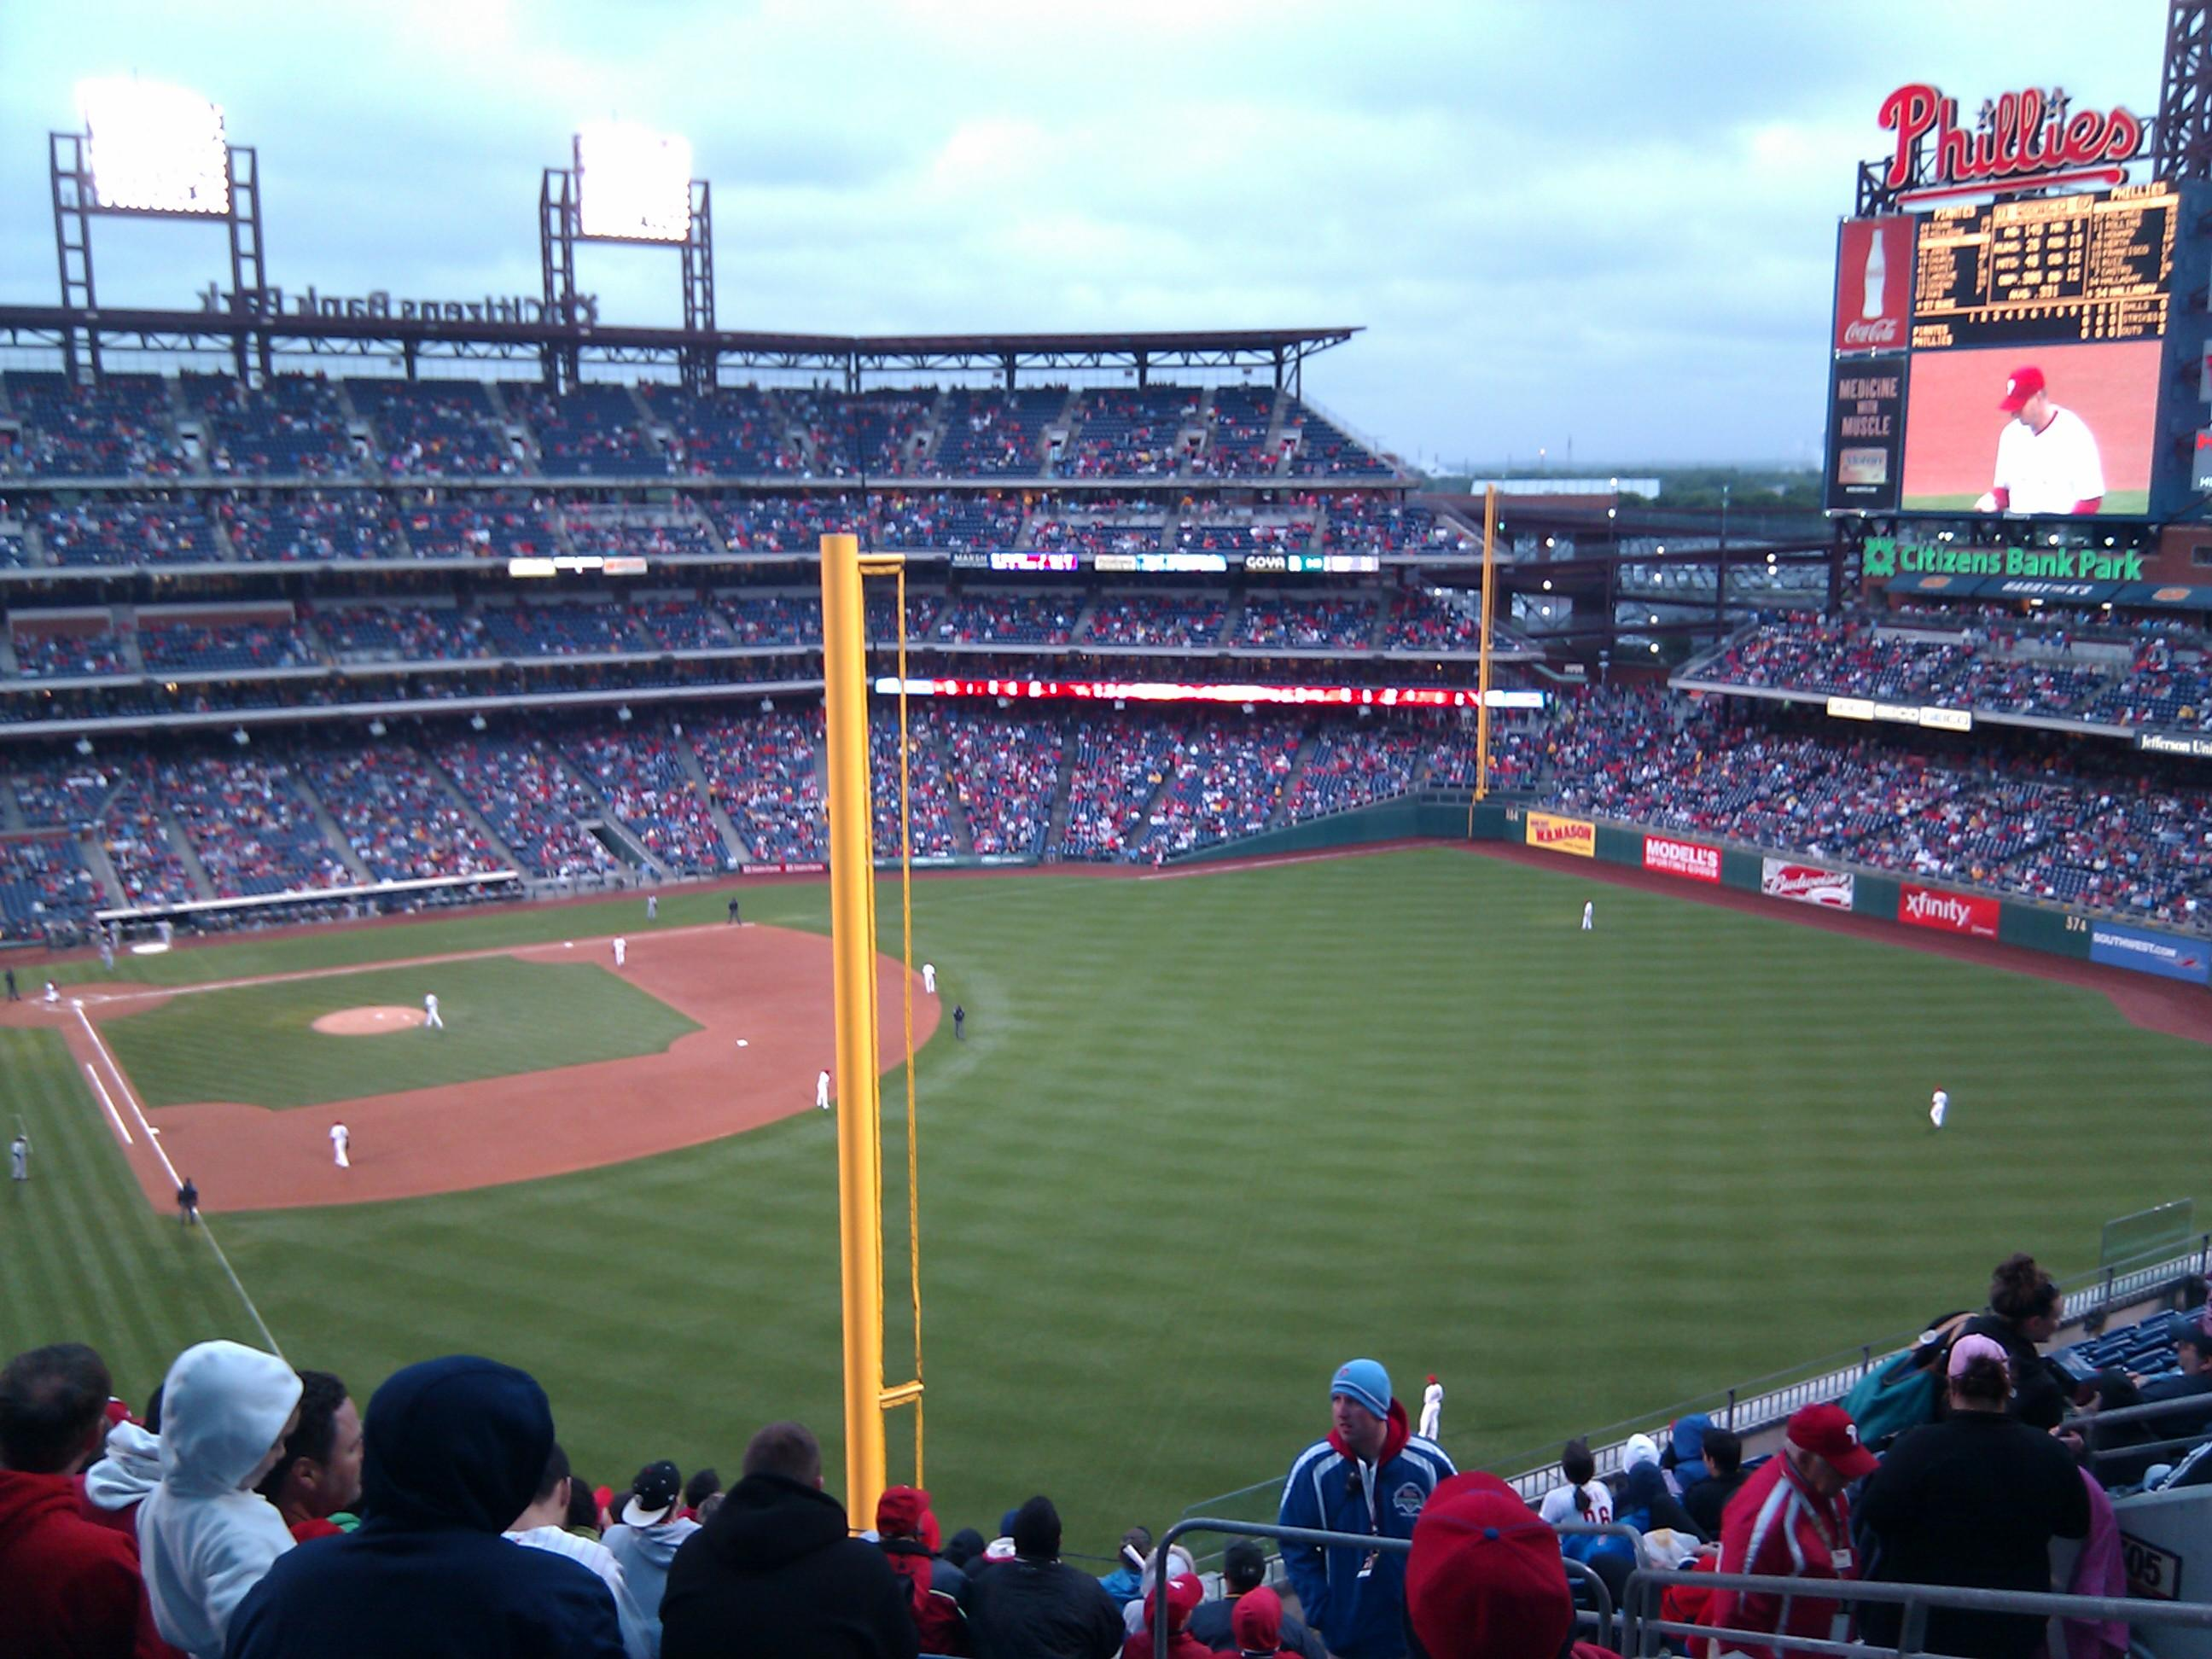 Citizens Bank Park Section 306 Row 14 Seat 5